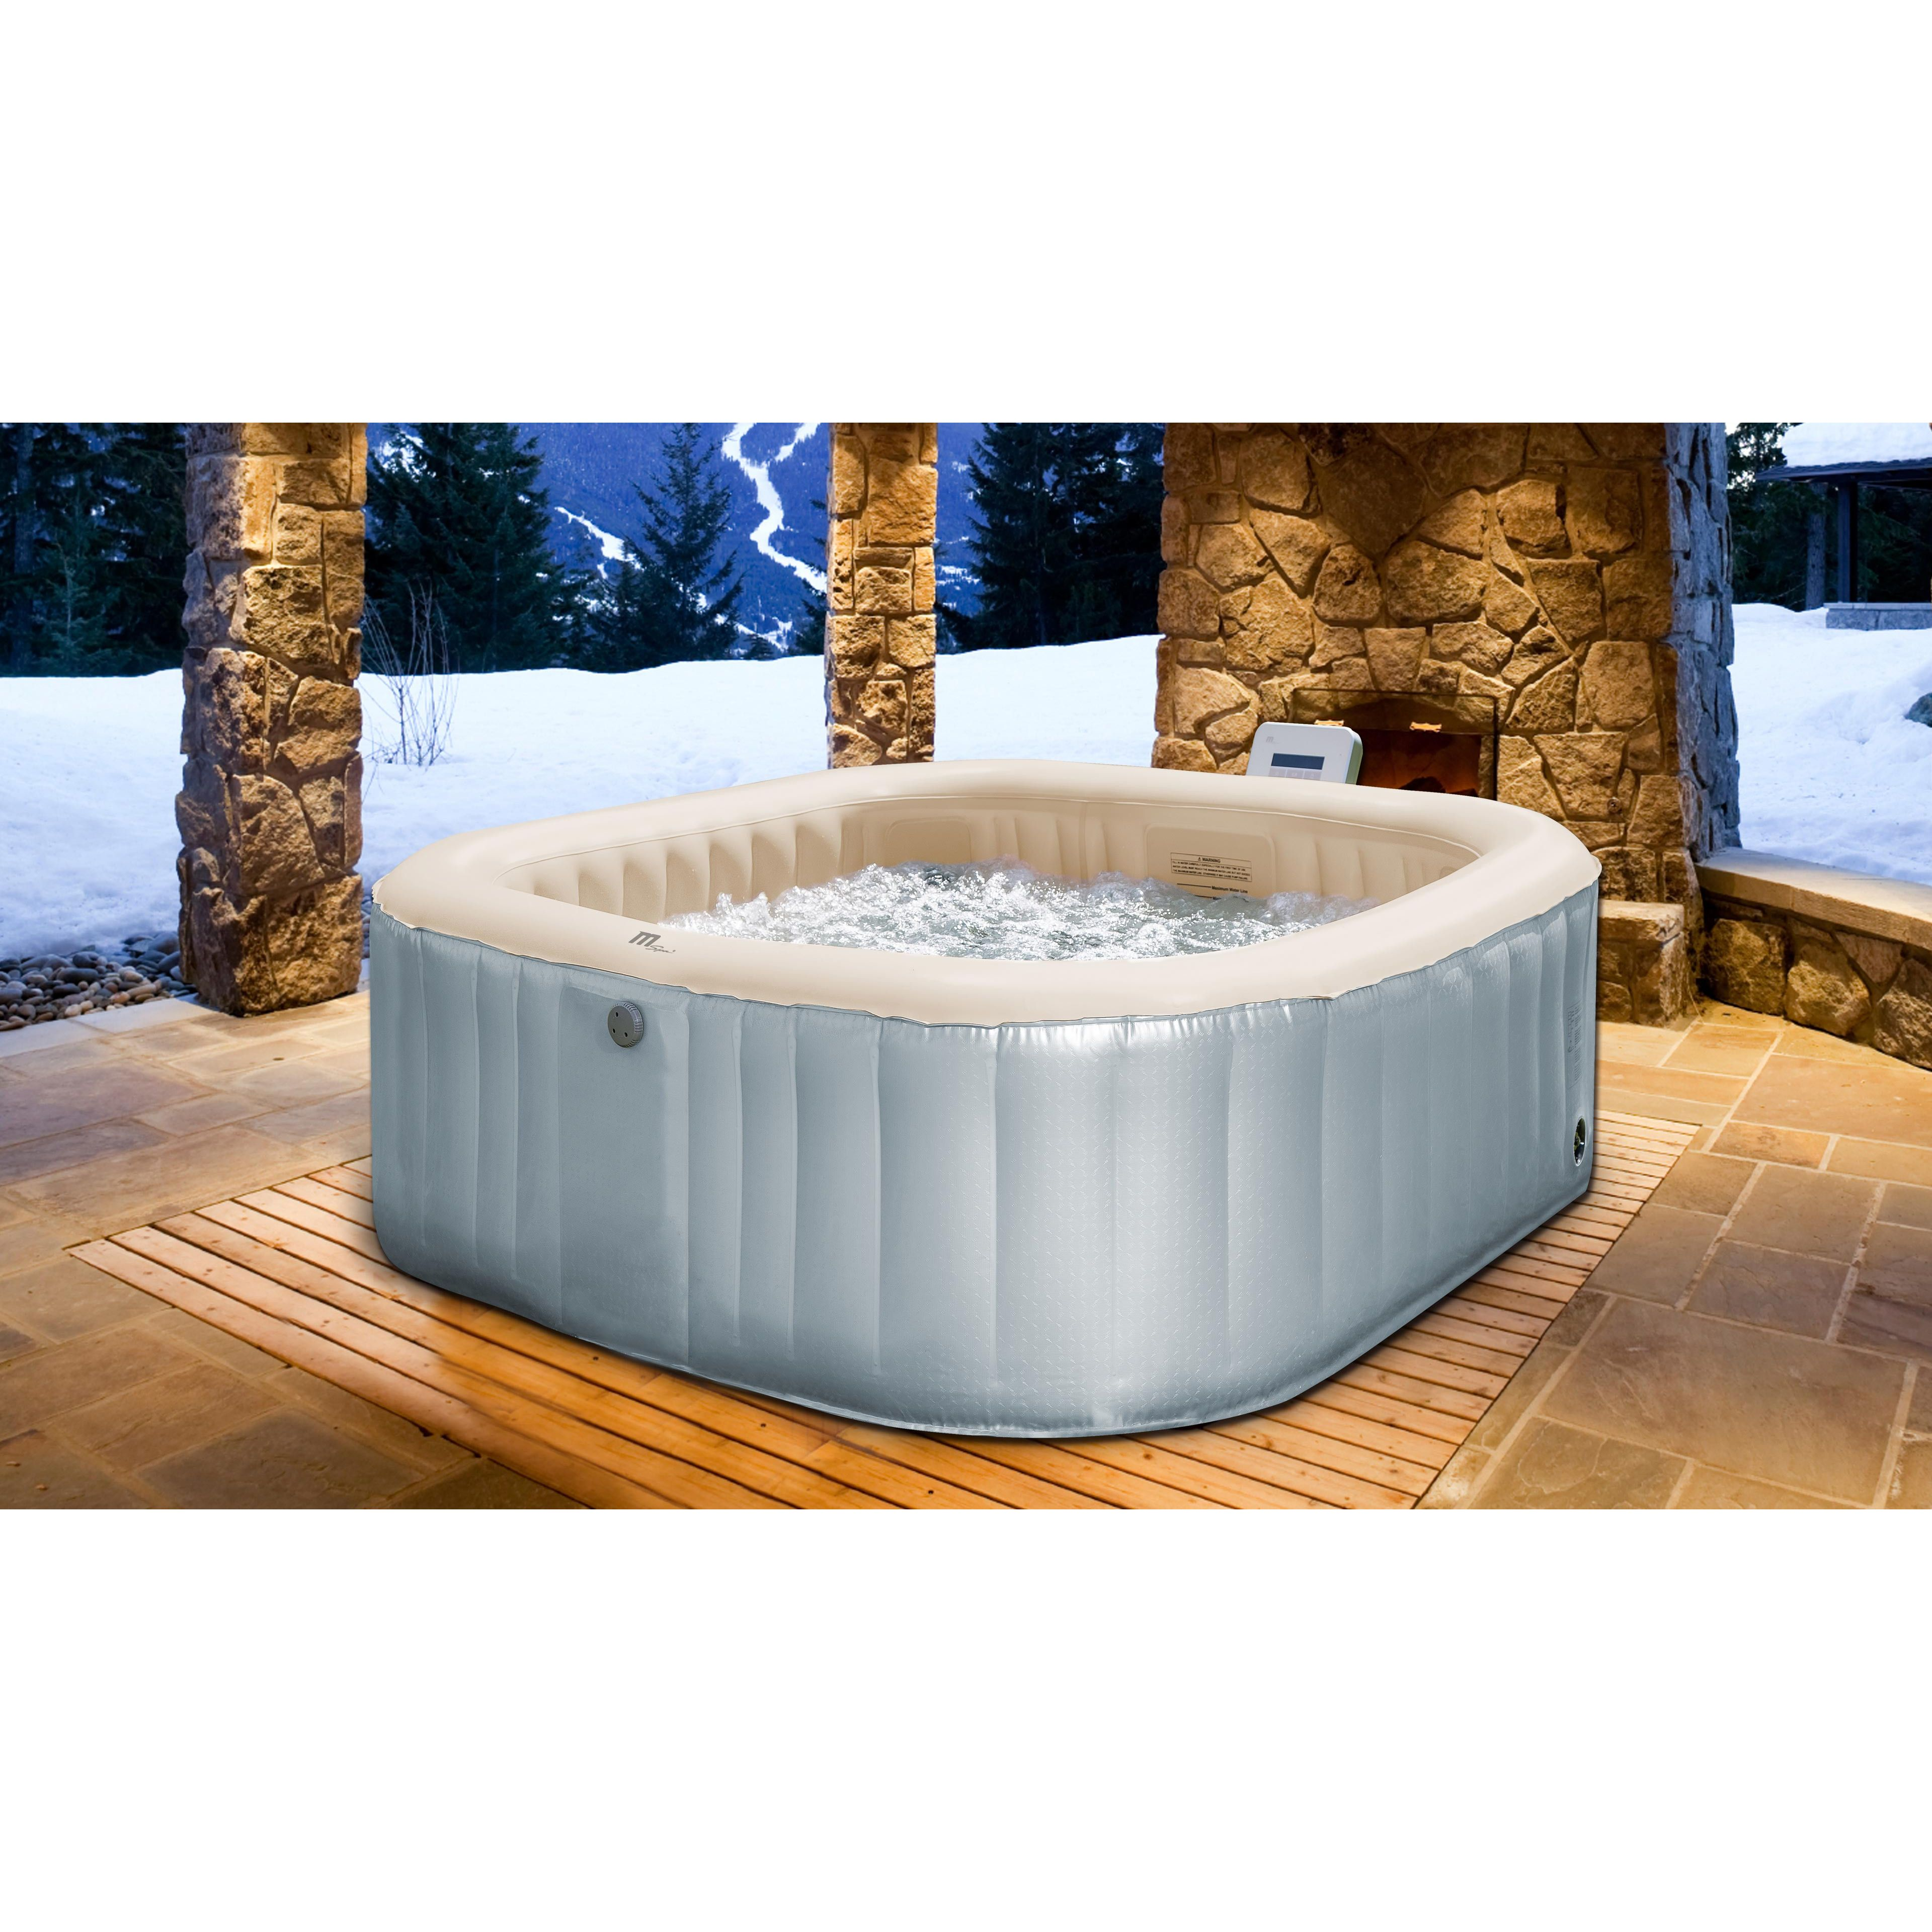 Spa gonflable 6 places jacuzzi gonflable - Meuble spa gonflable ...